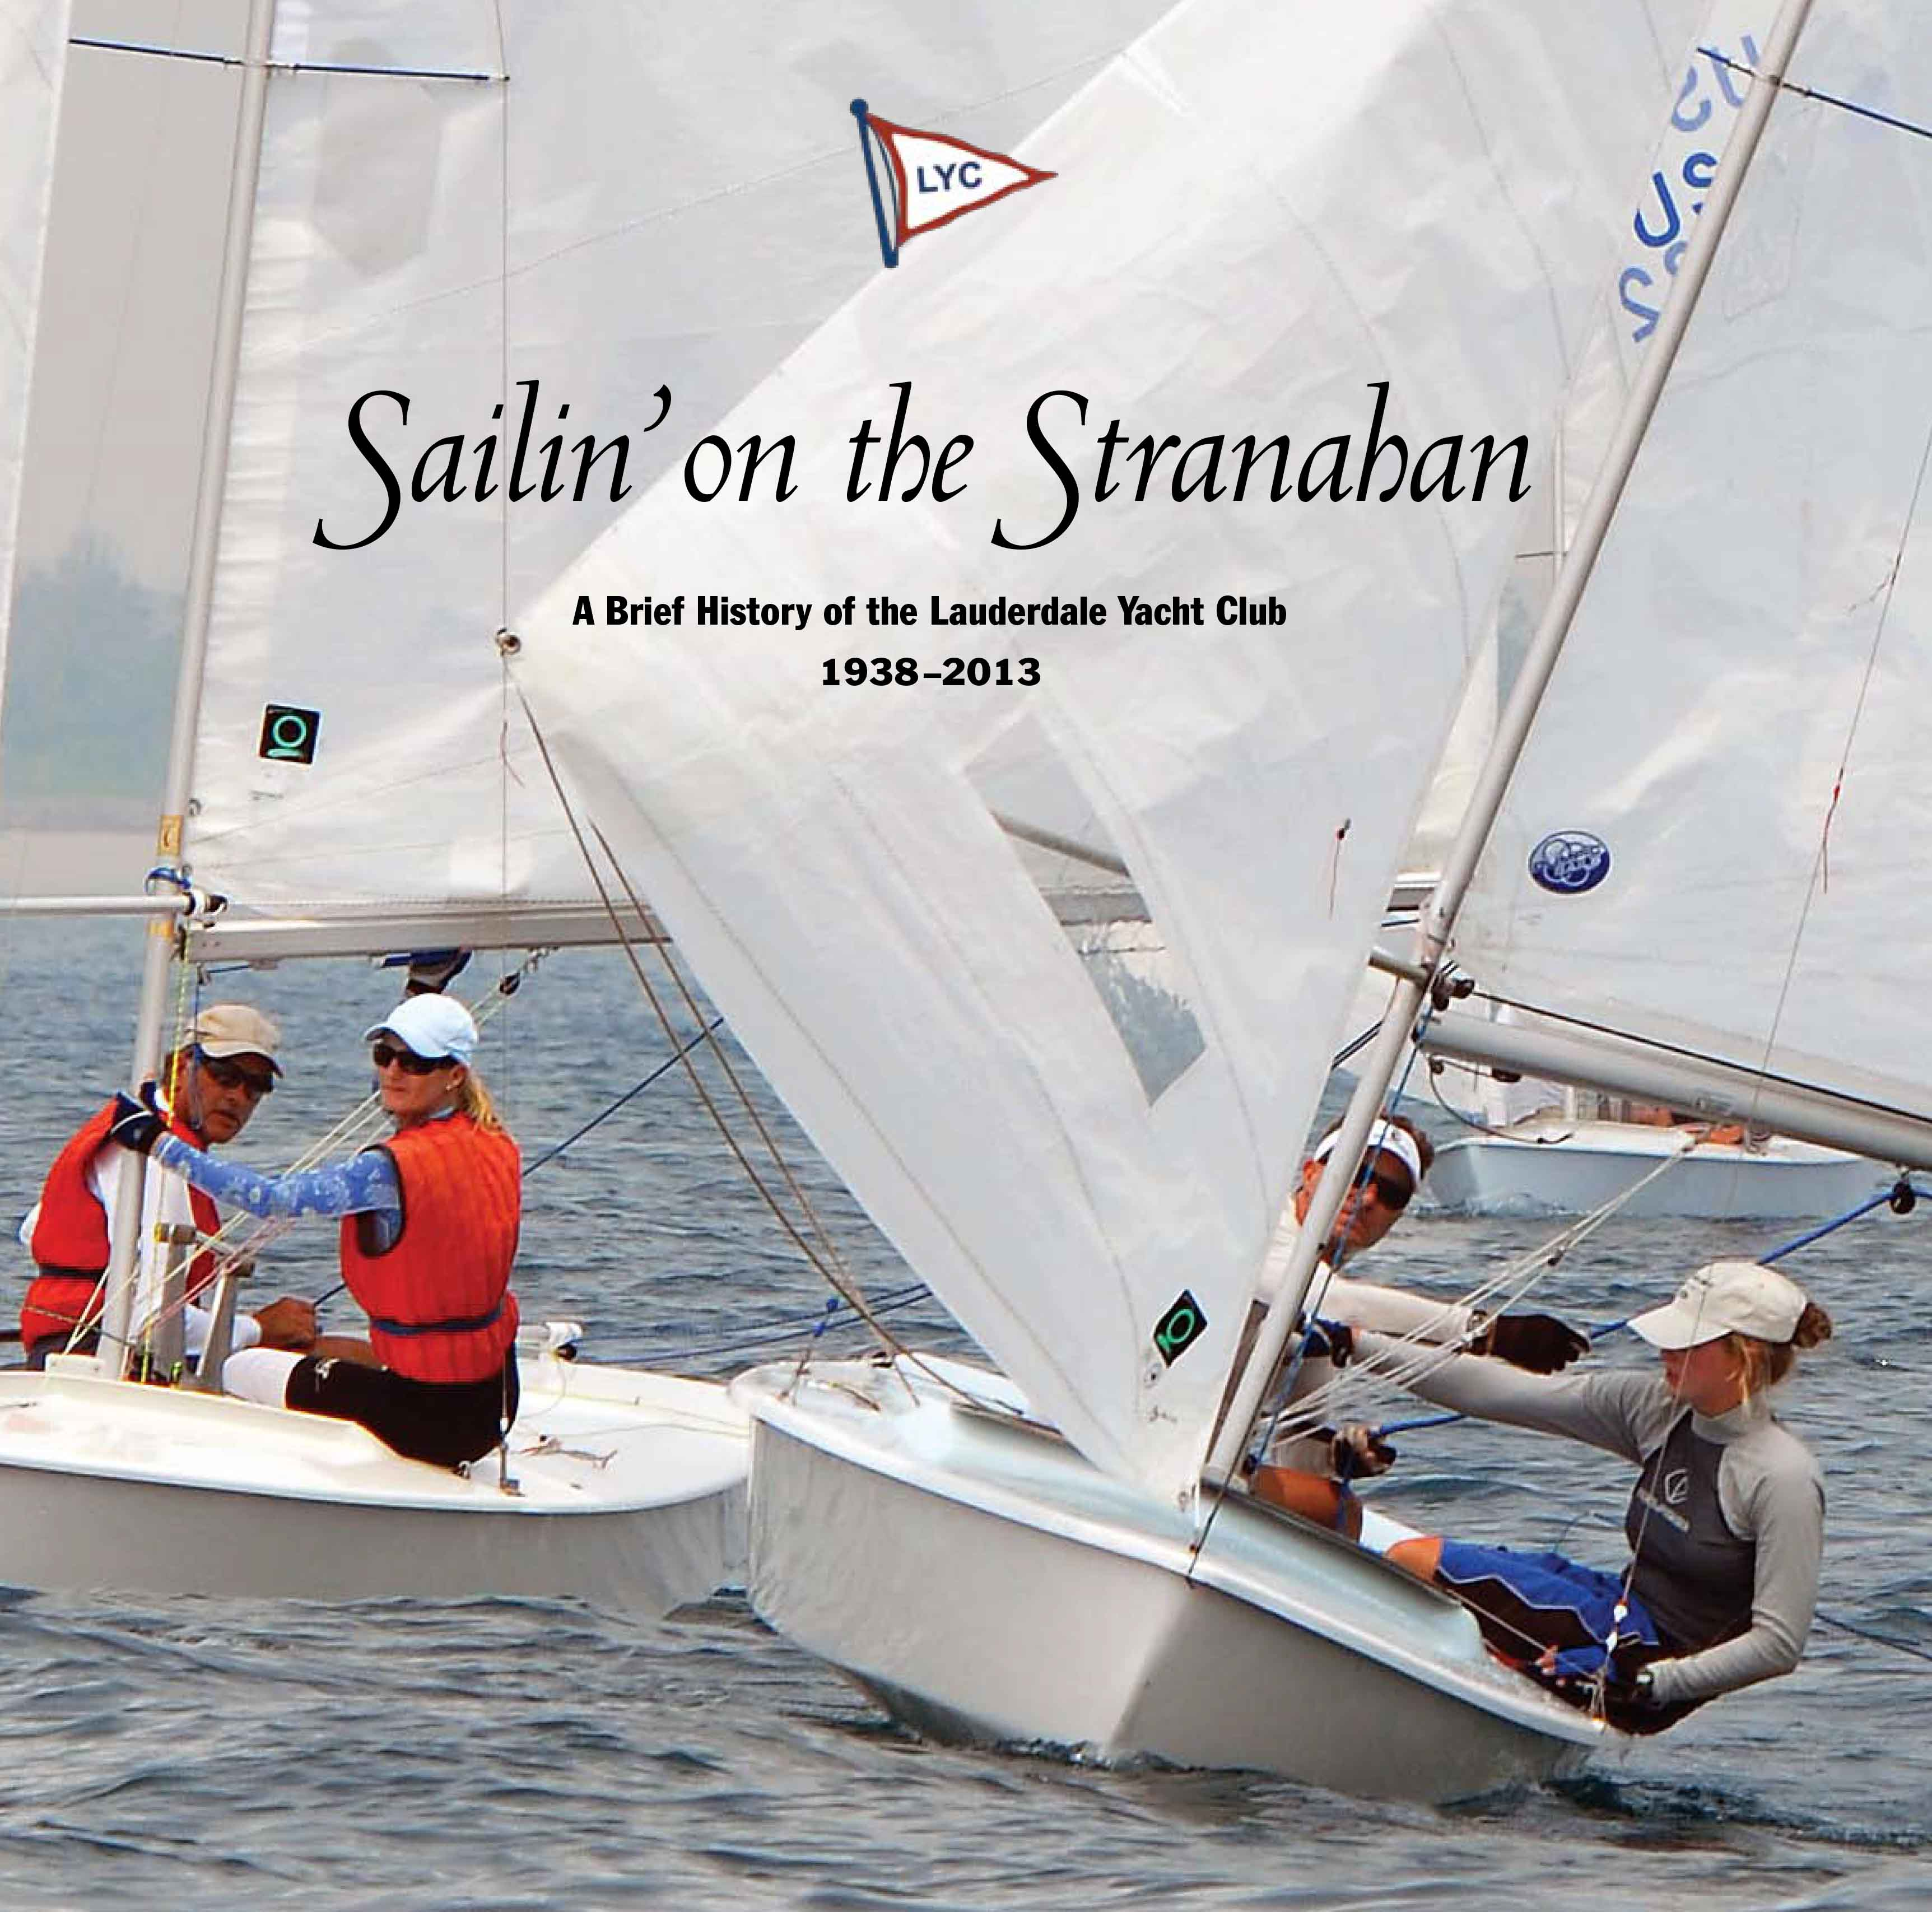 Sailin' the Stranahan